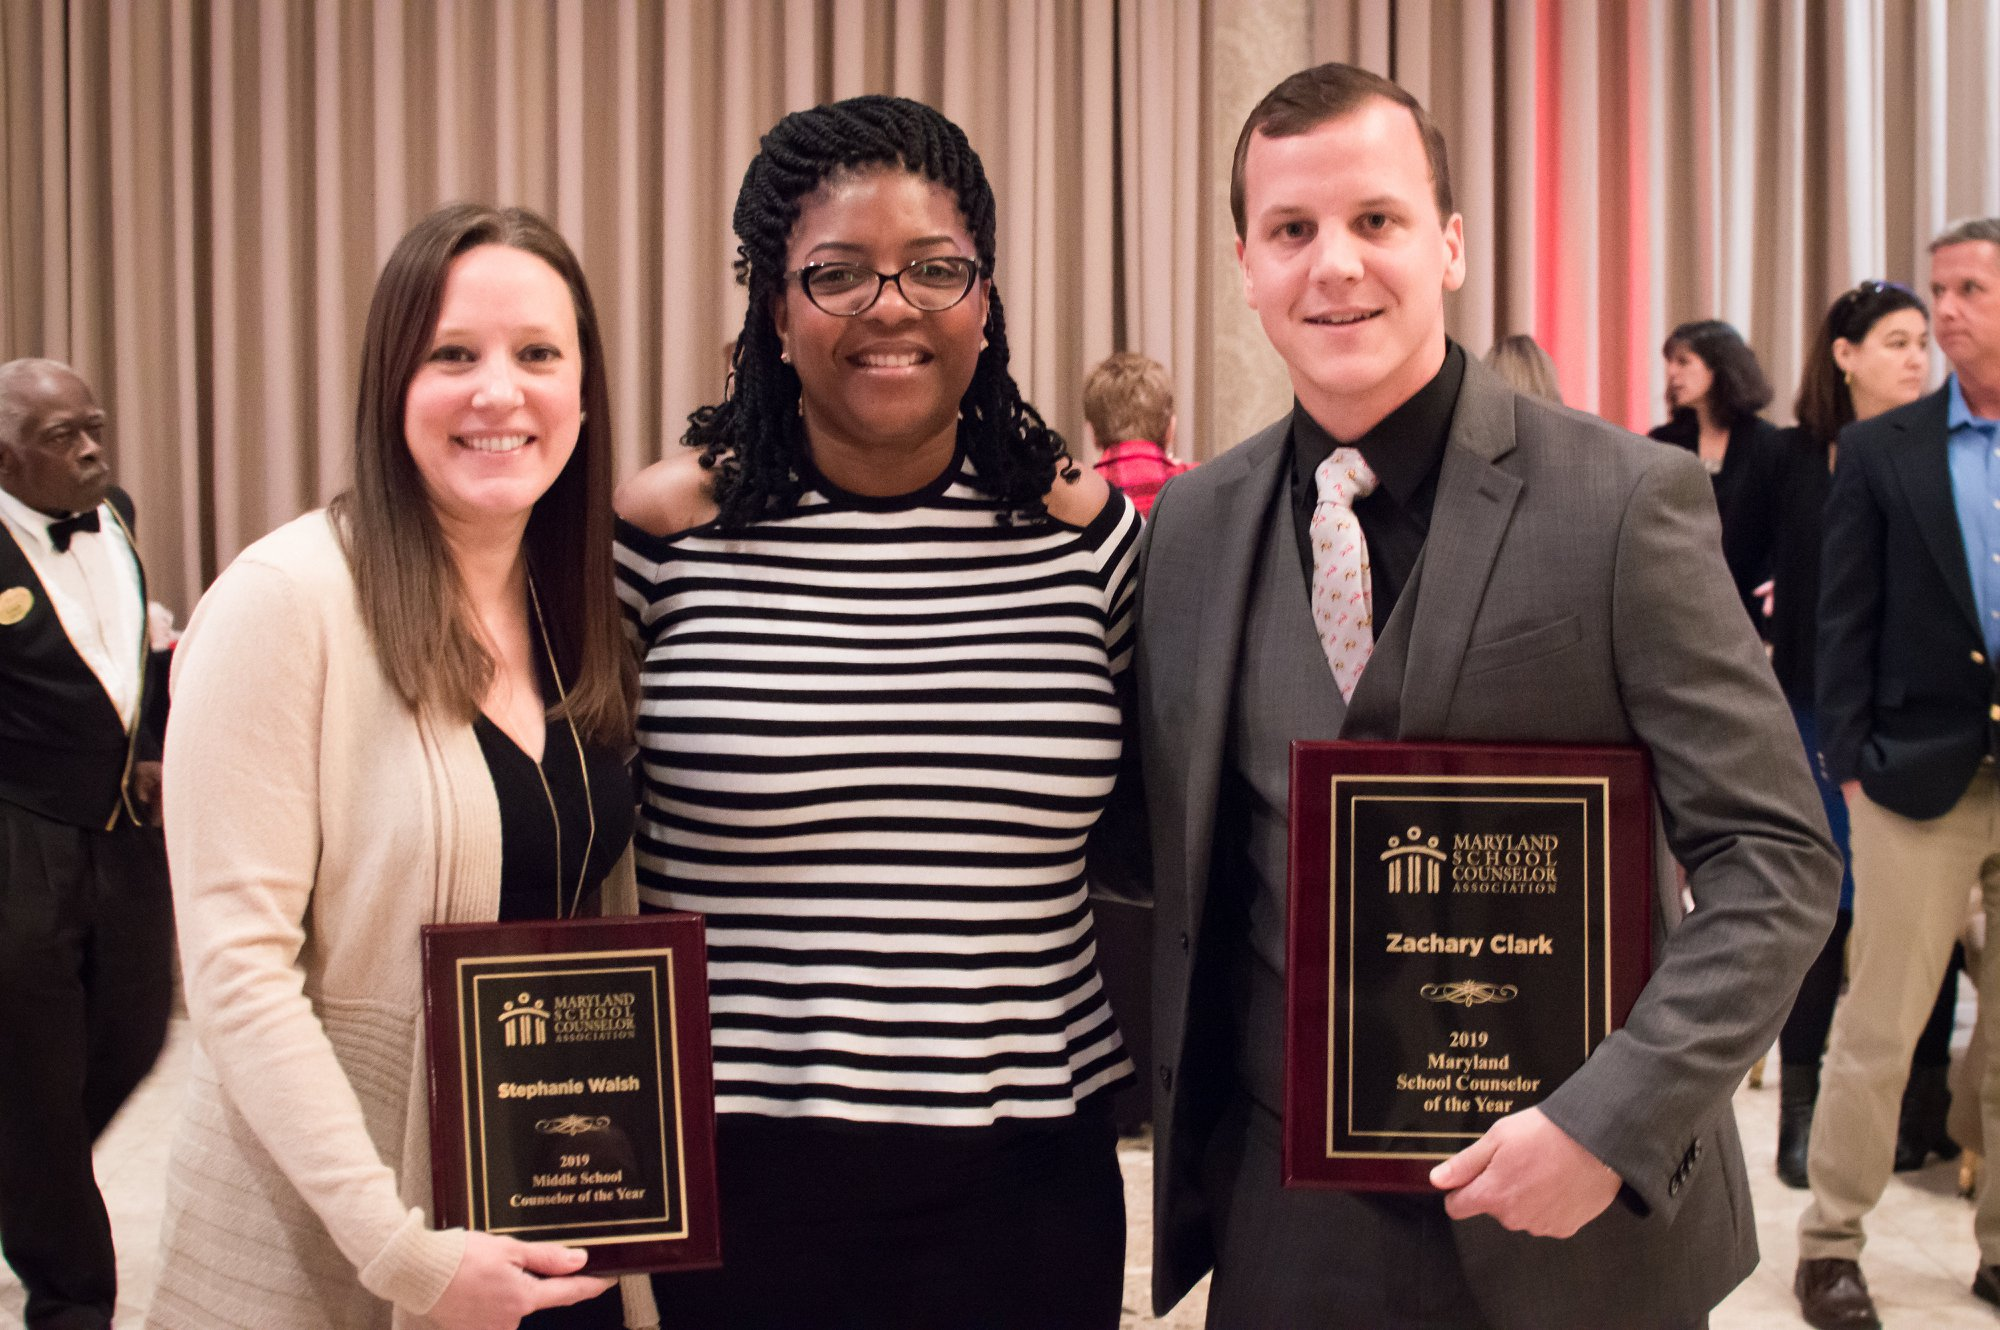 2019 NSCW School Counselor Recogntion Gala – Pictures and